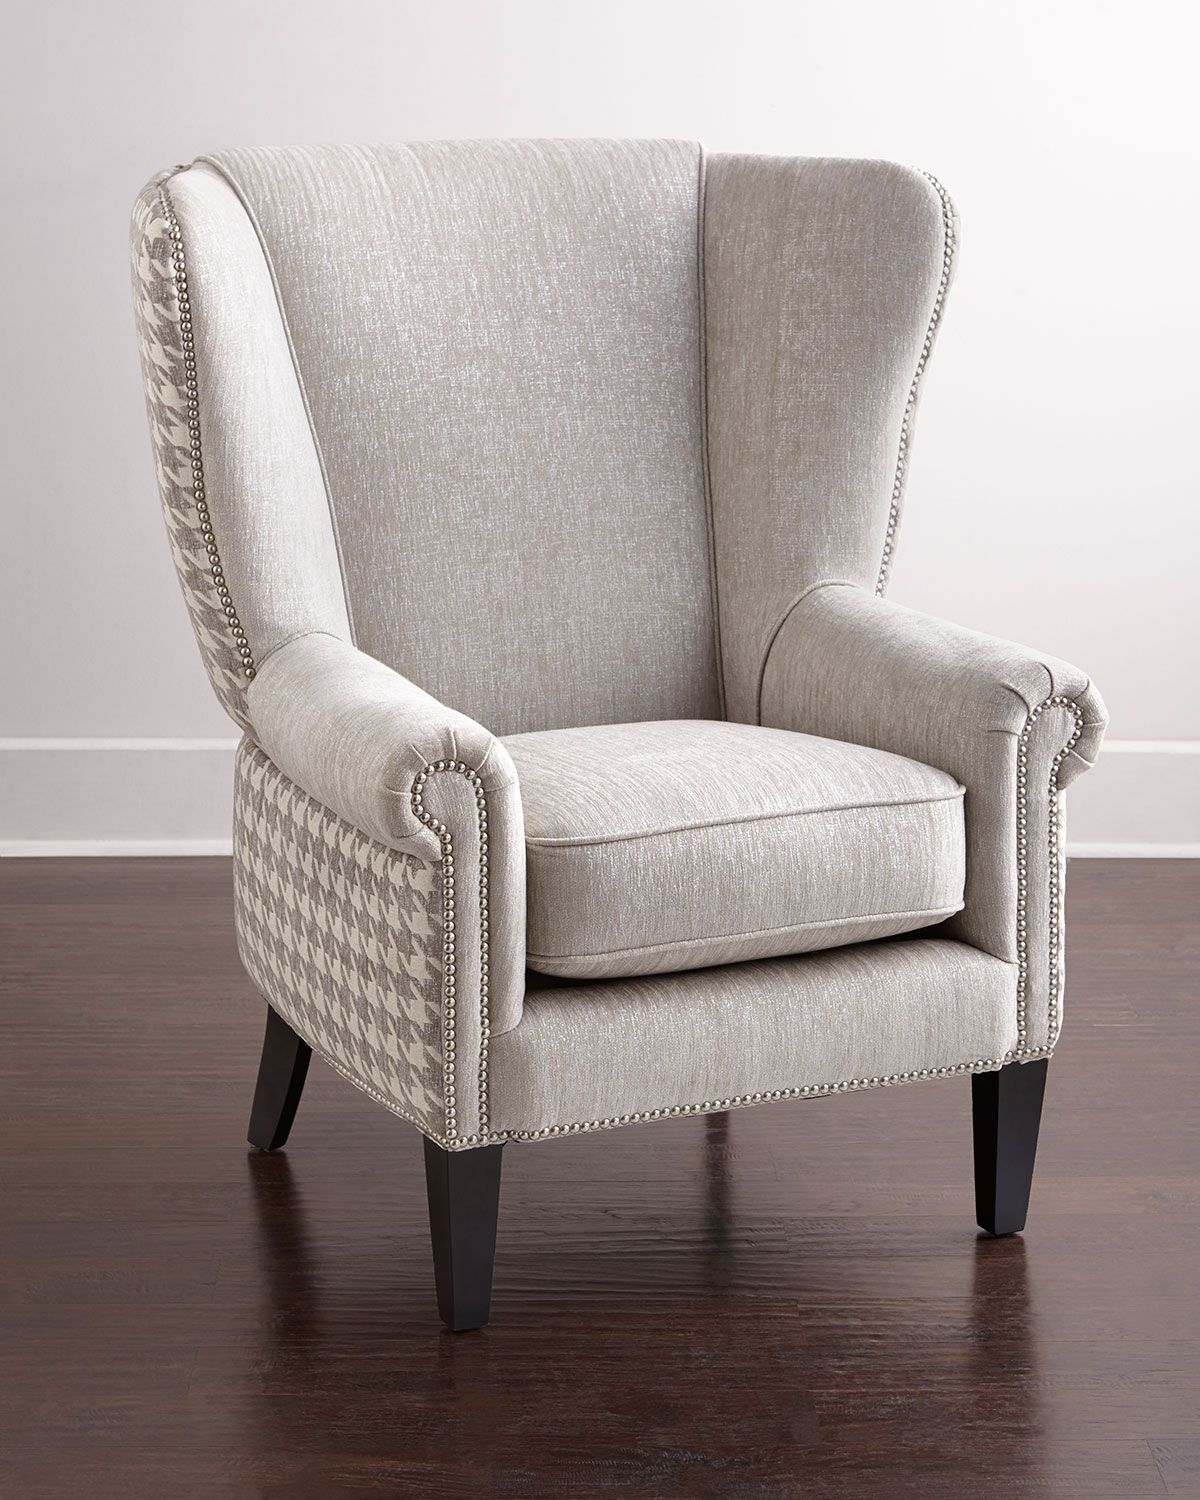 harlow cuddle chair upcycled desk onlyatnm only here ours exclusively for you wing